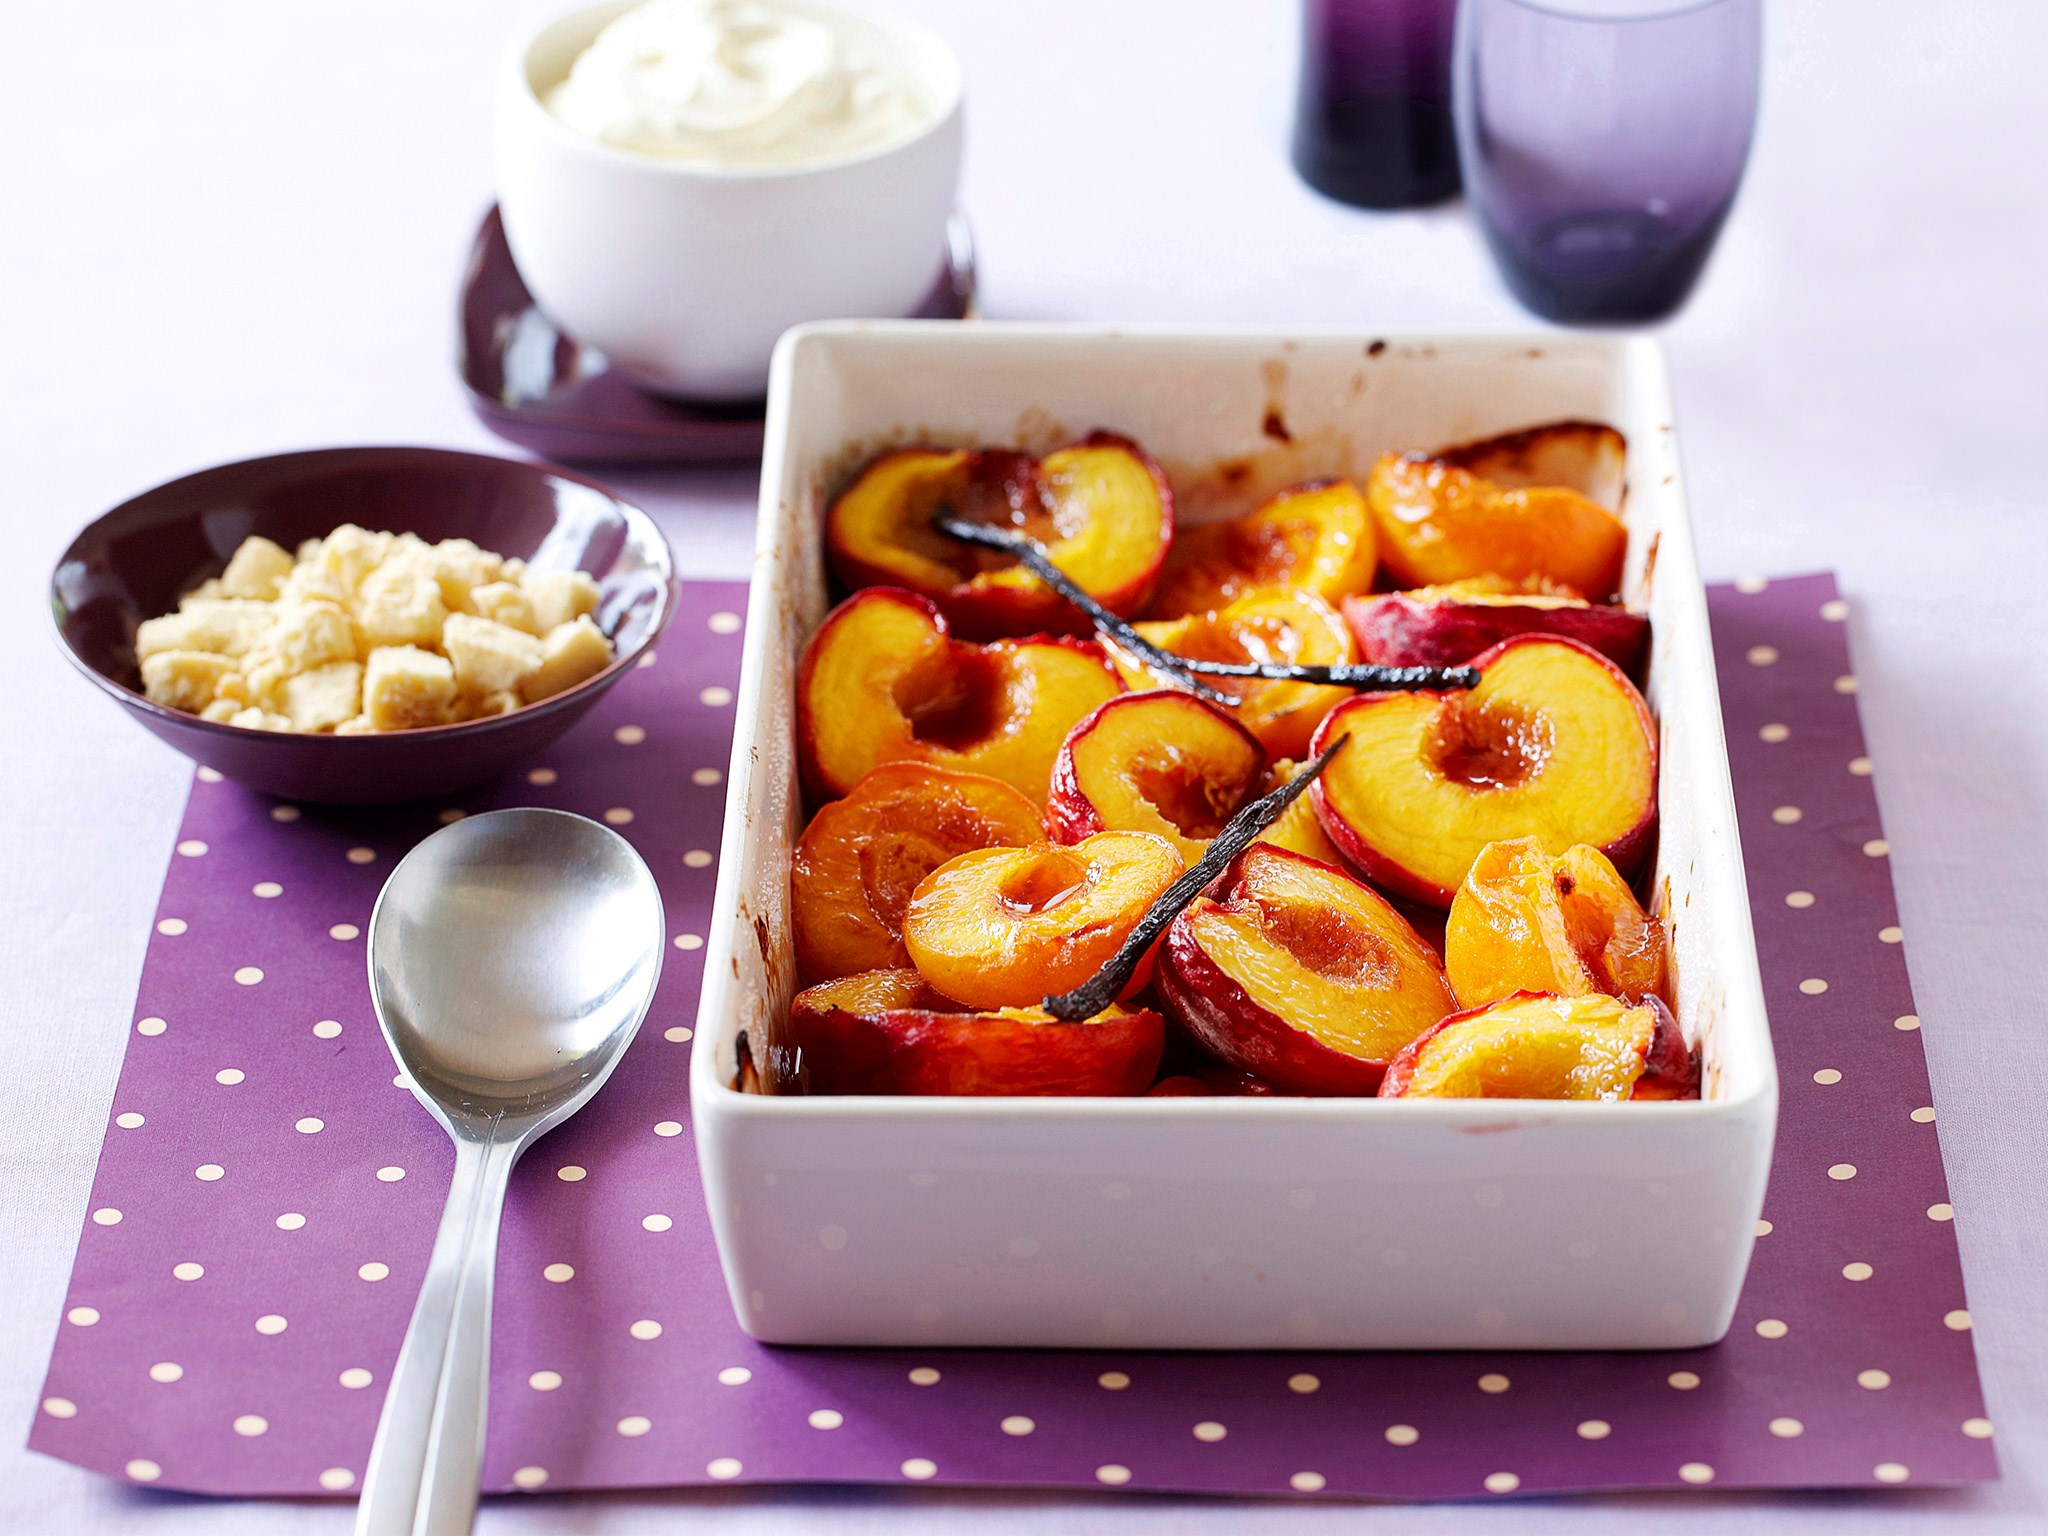 **[APRICOTS](http://www.foodtolove.com.au/recipes/collections/apricot-dessert-recipes)**